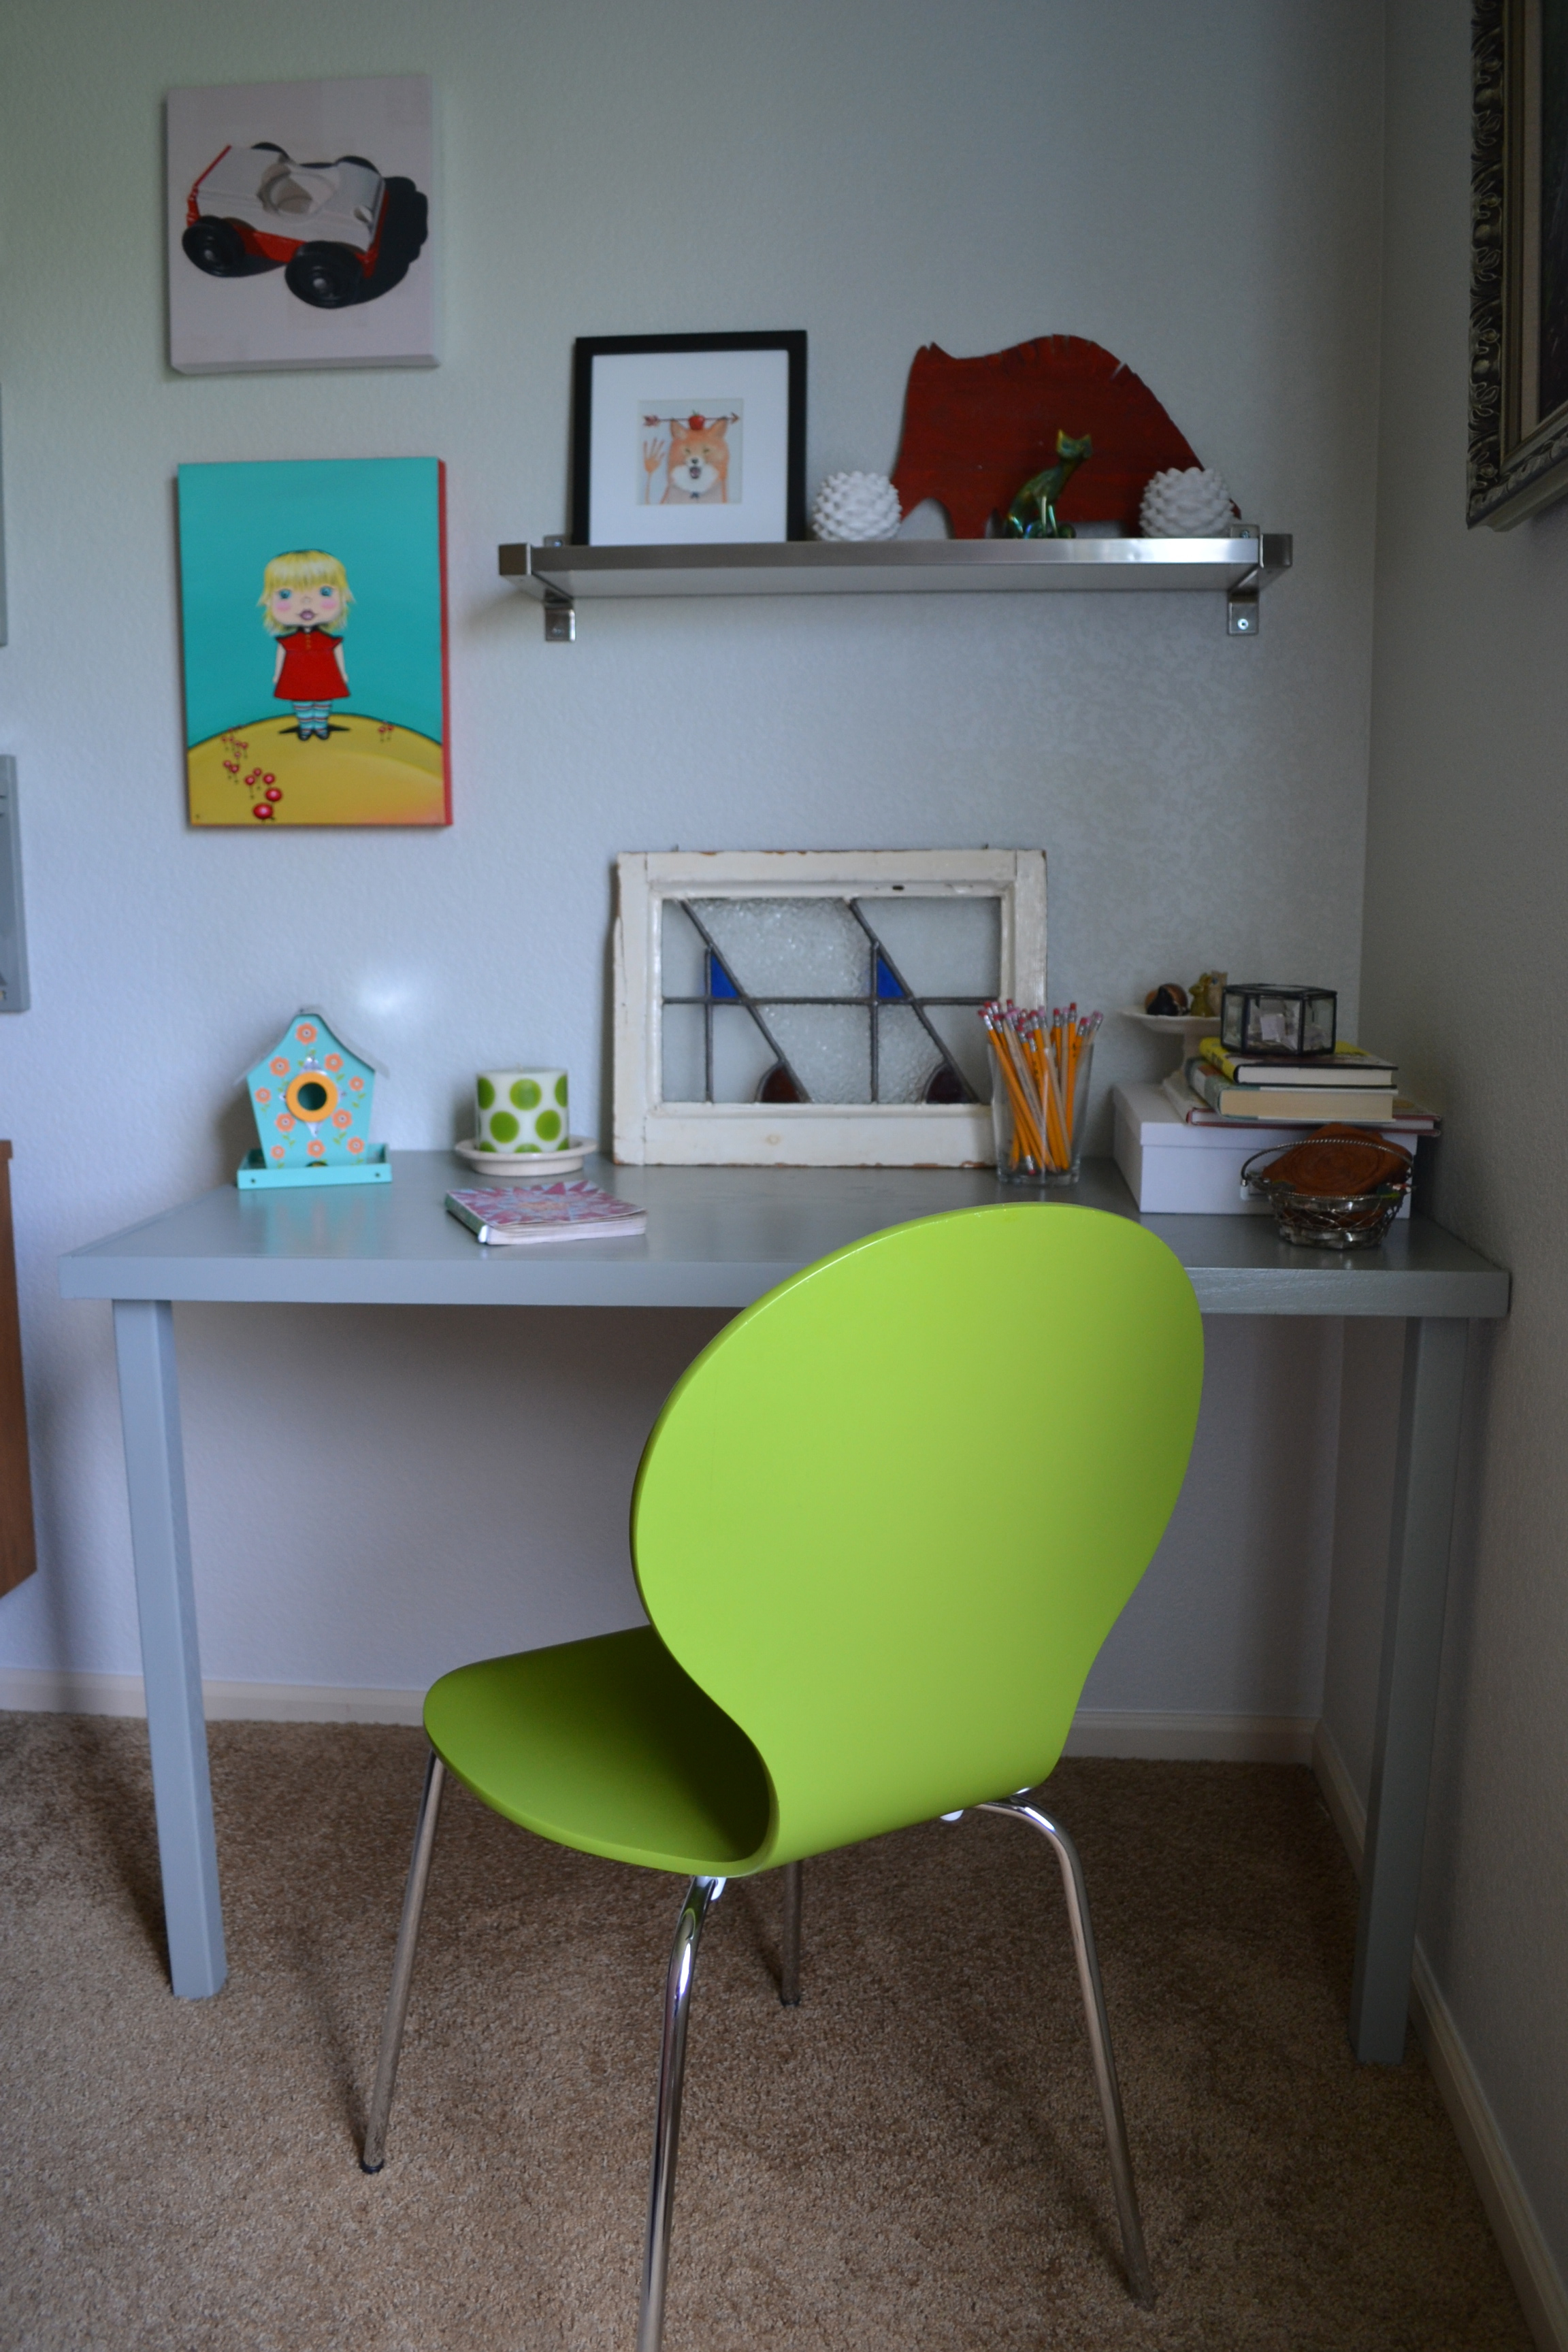 A Target dining chair in green